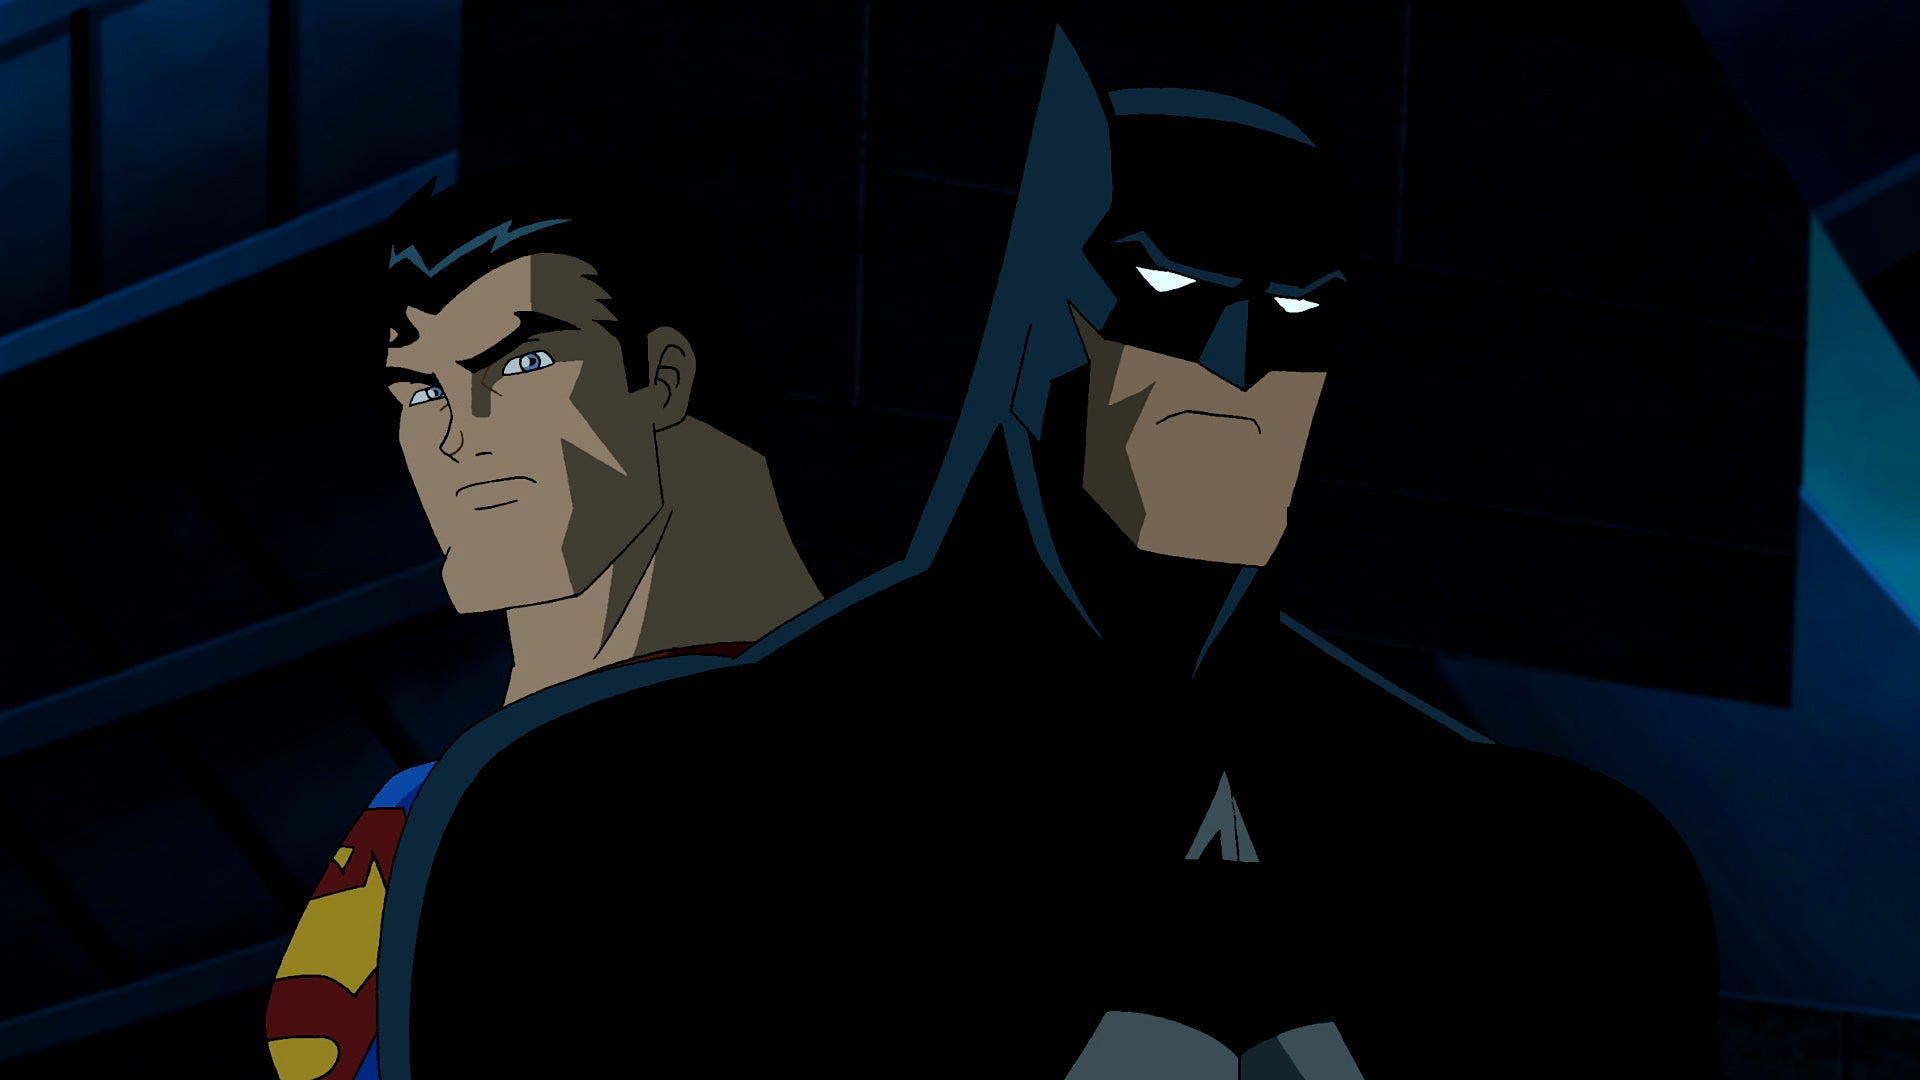 justice league doom streaming vf hd